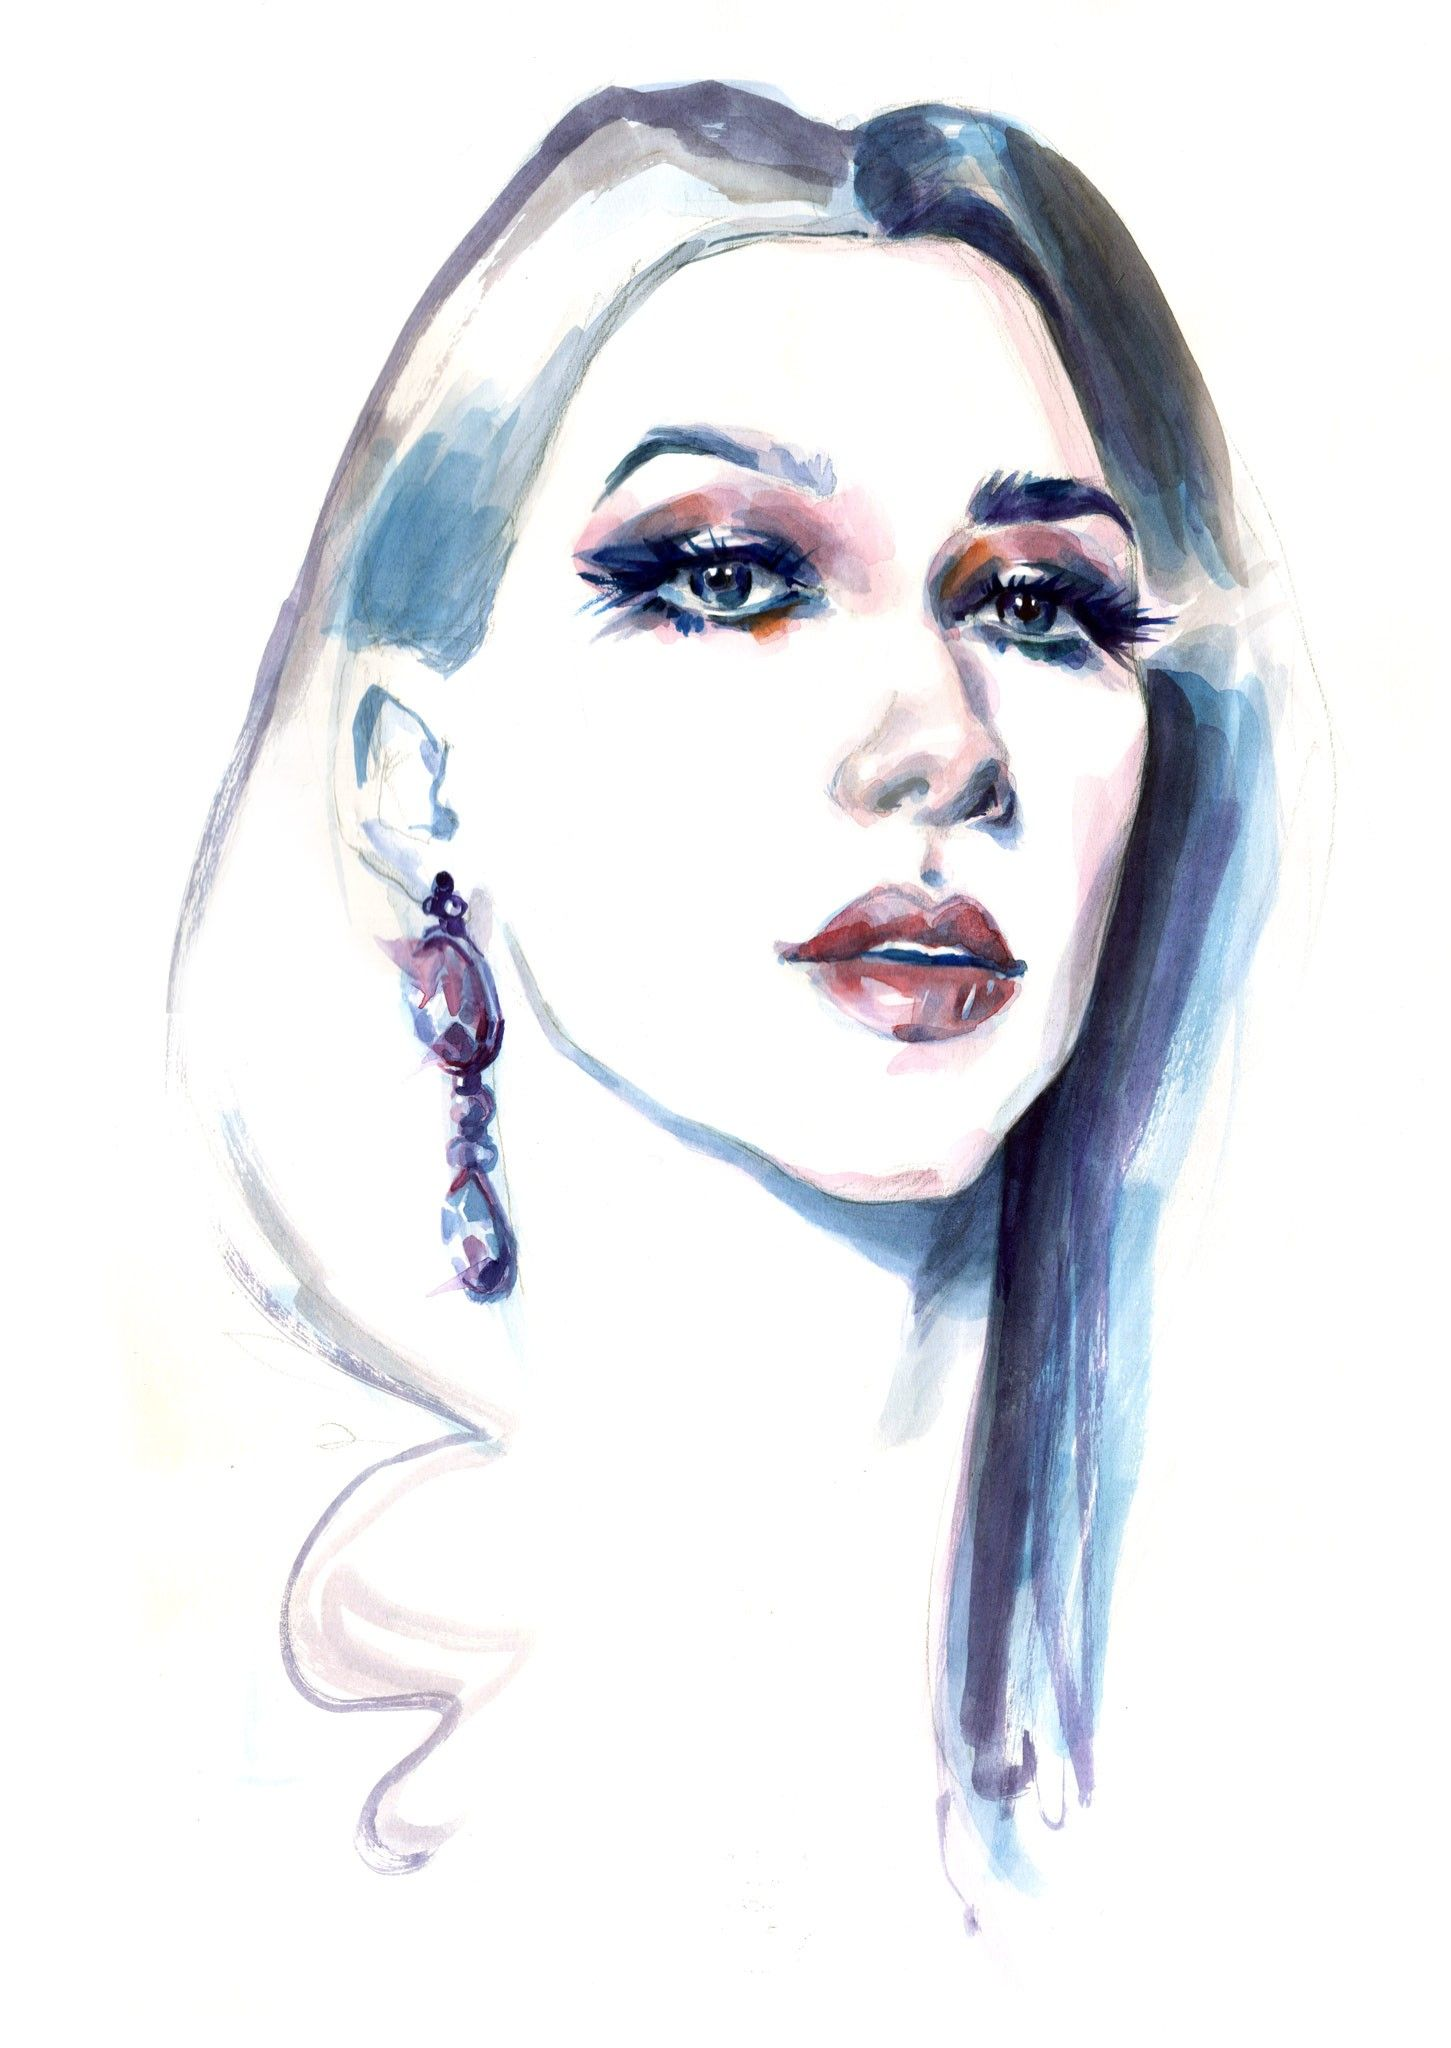 diana-enciu-fashion-illustration-fabulous-muses-sinestezic